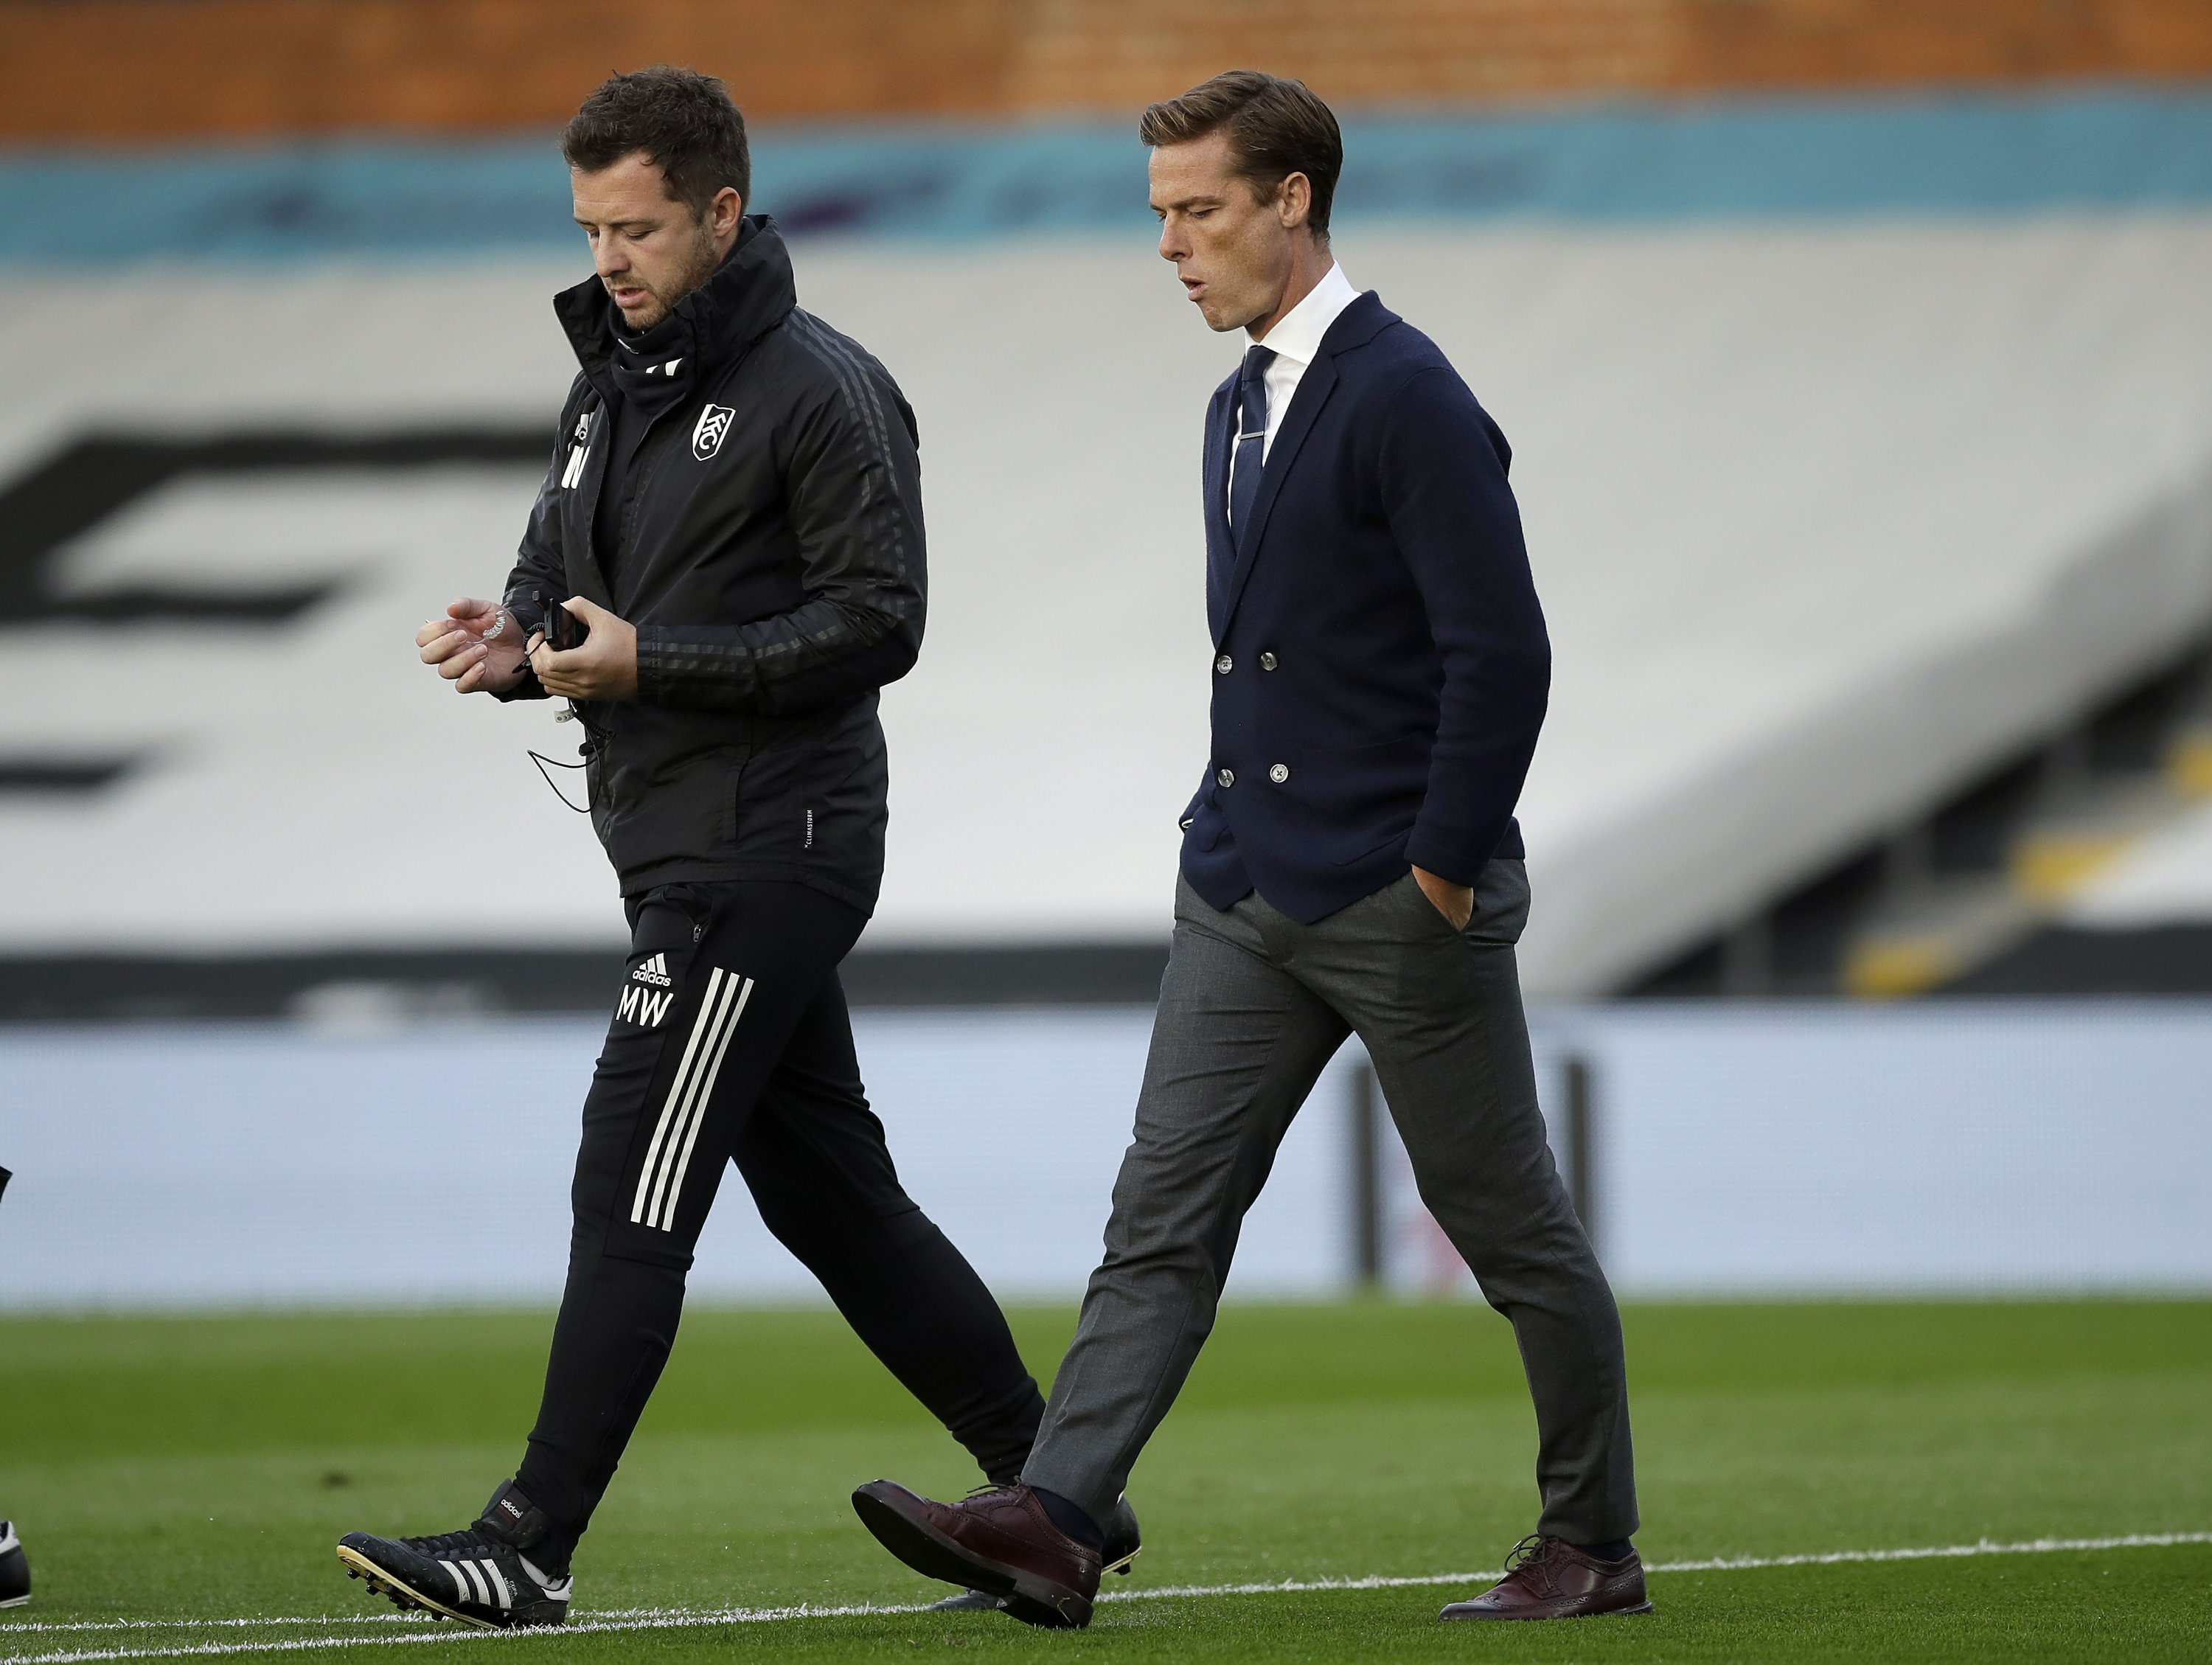 Parker Unhappy With Fulham Owner For Apologizing For Loss